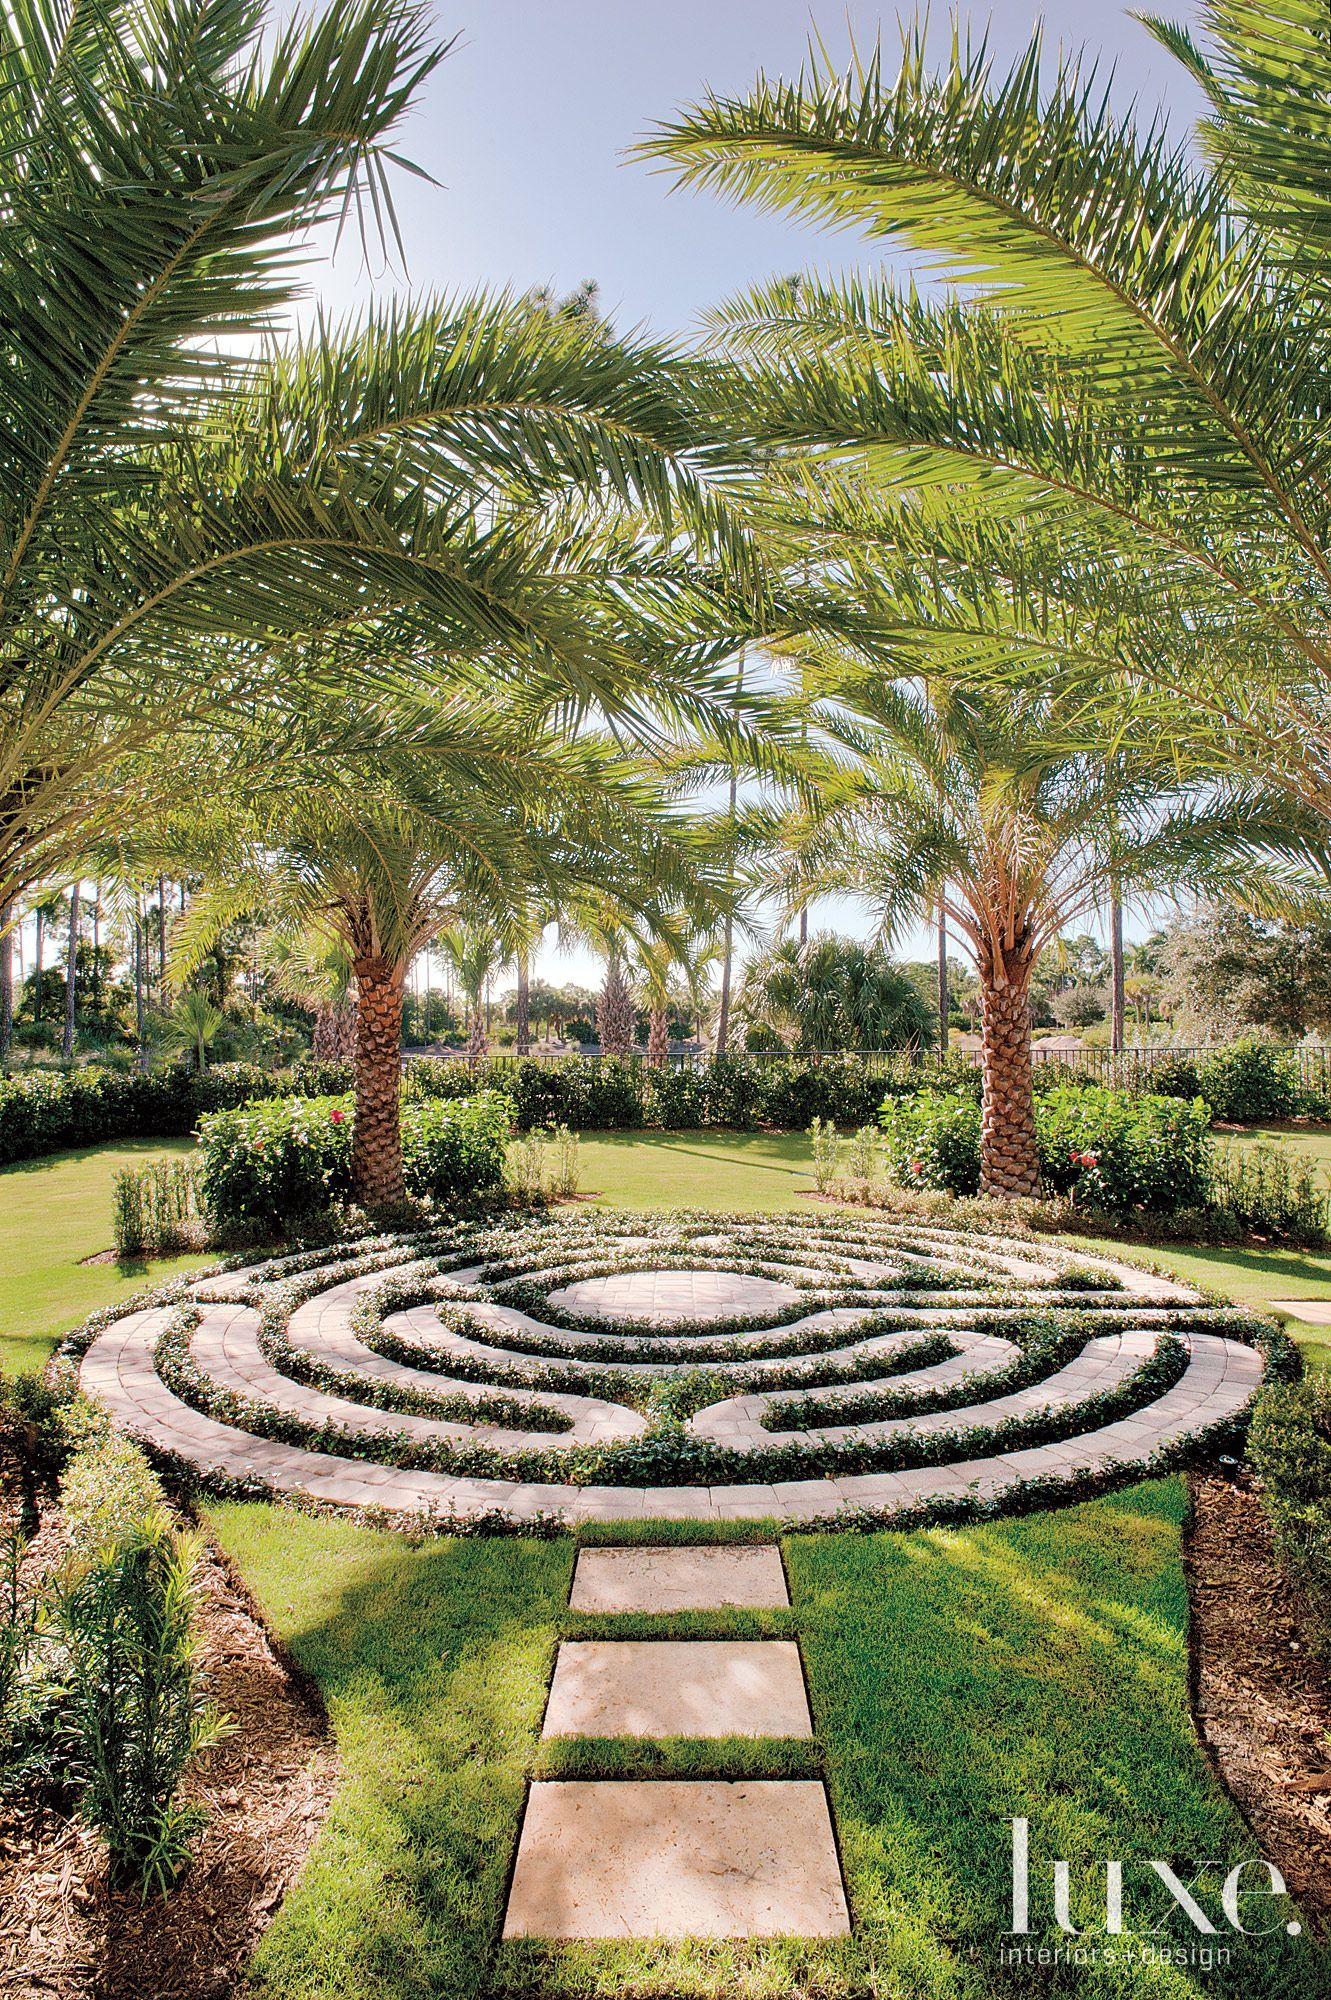 Immerse yourself in these plentiful gardens that signal springtime is near…